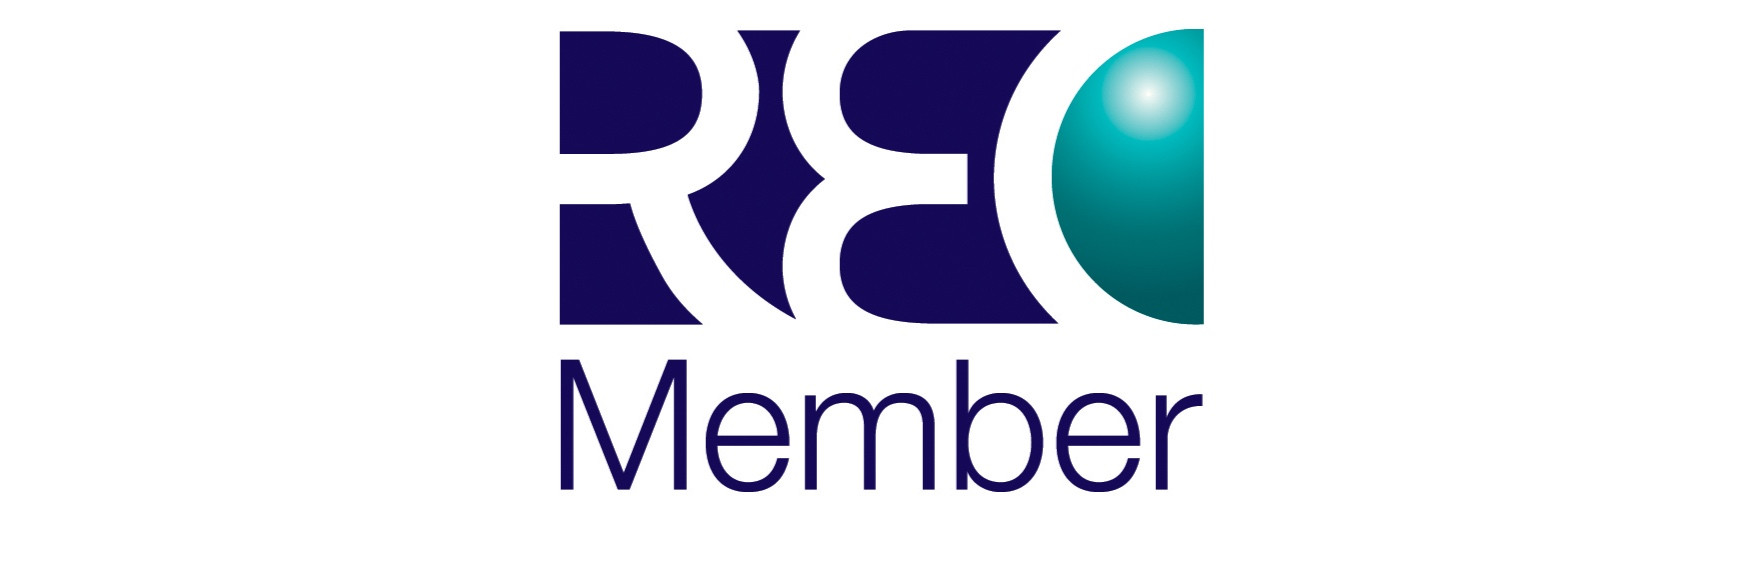 - We are proud to be a member of the Recruitment & Employment Confederation